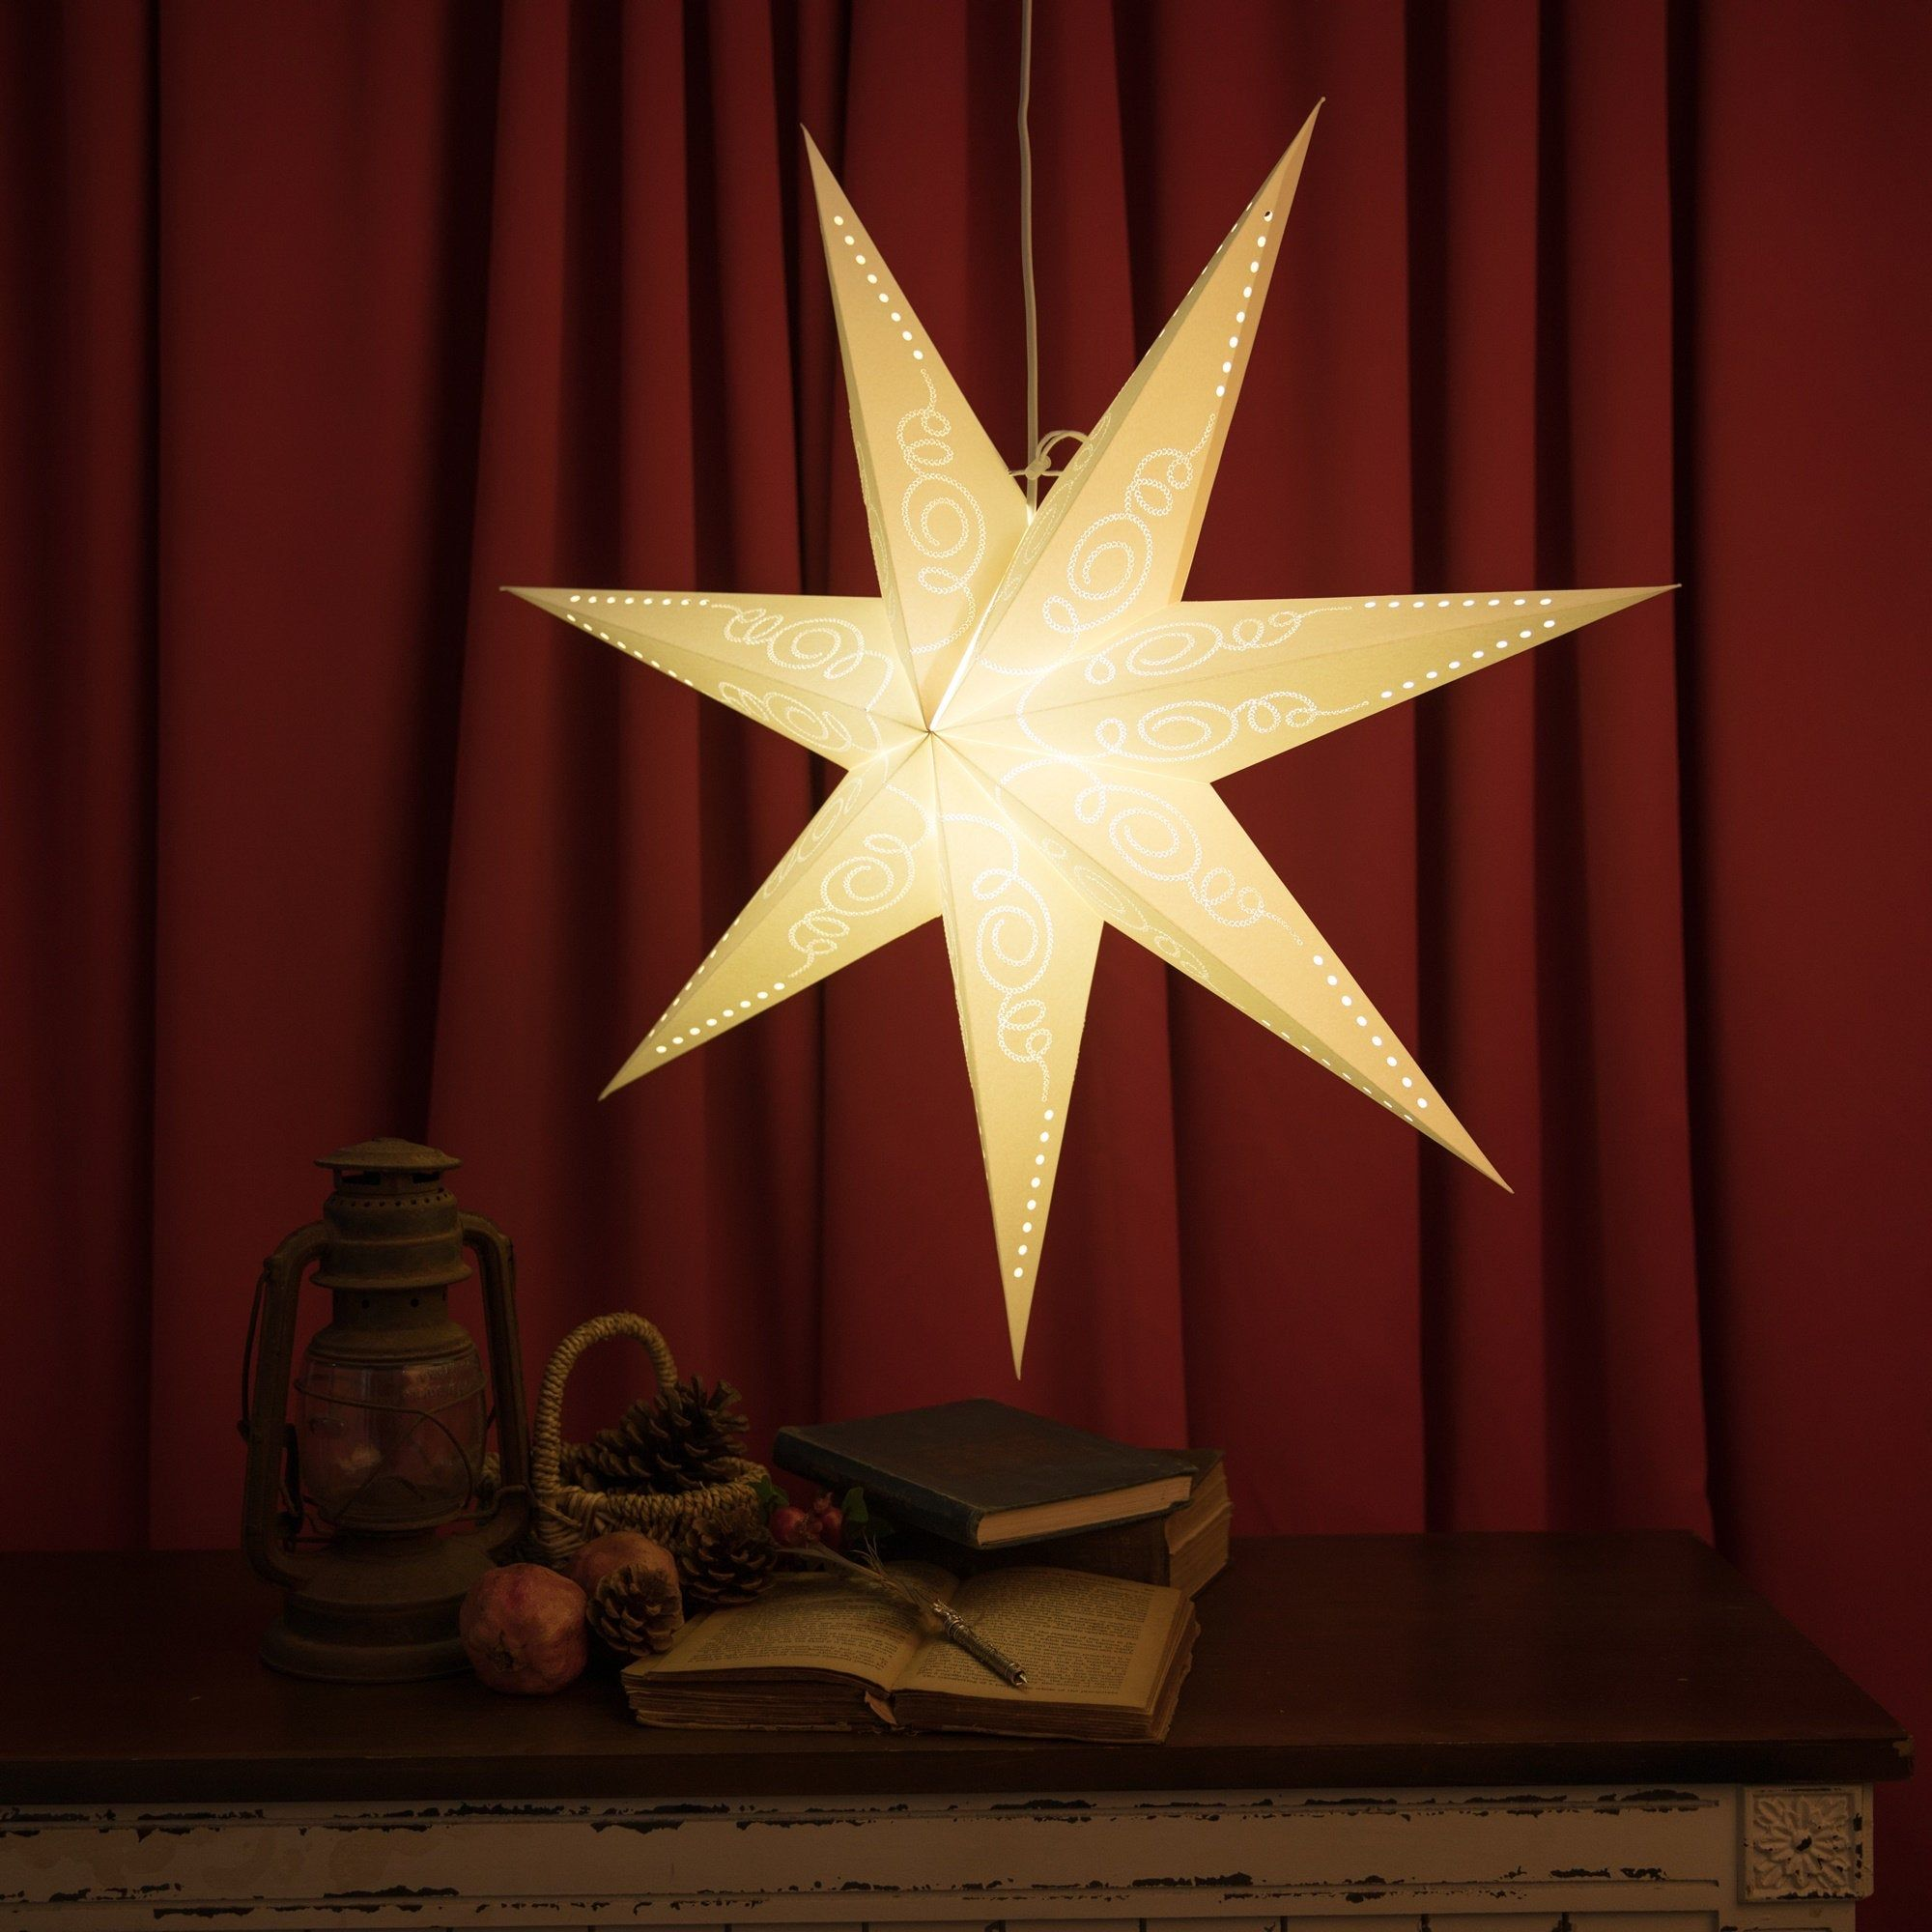 29inches Hanging Star Lampshade With Artworks Embroidery White